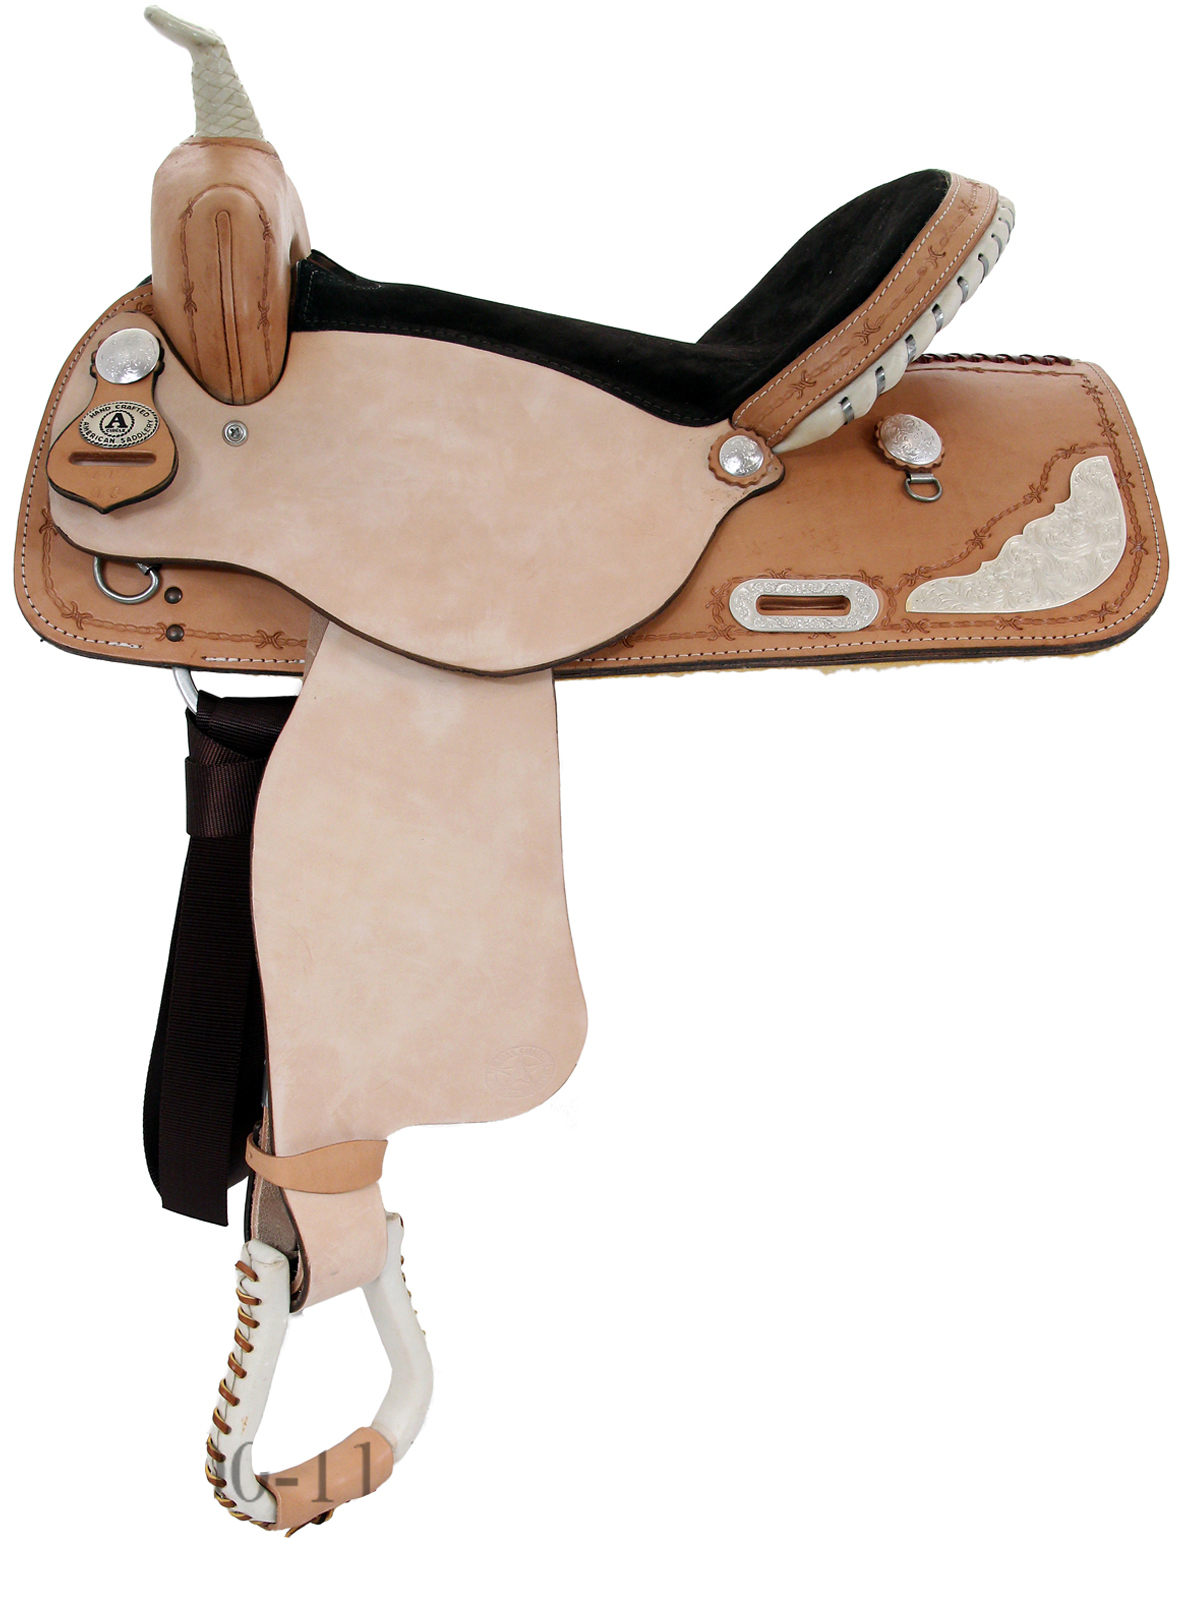 14inch to 16inch American Saddlery Silver Racer Barrel Saddle 717